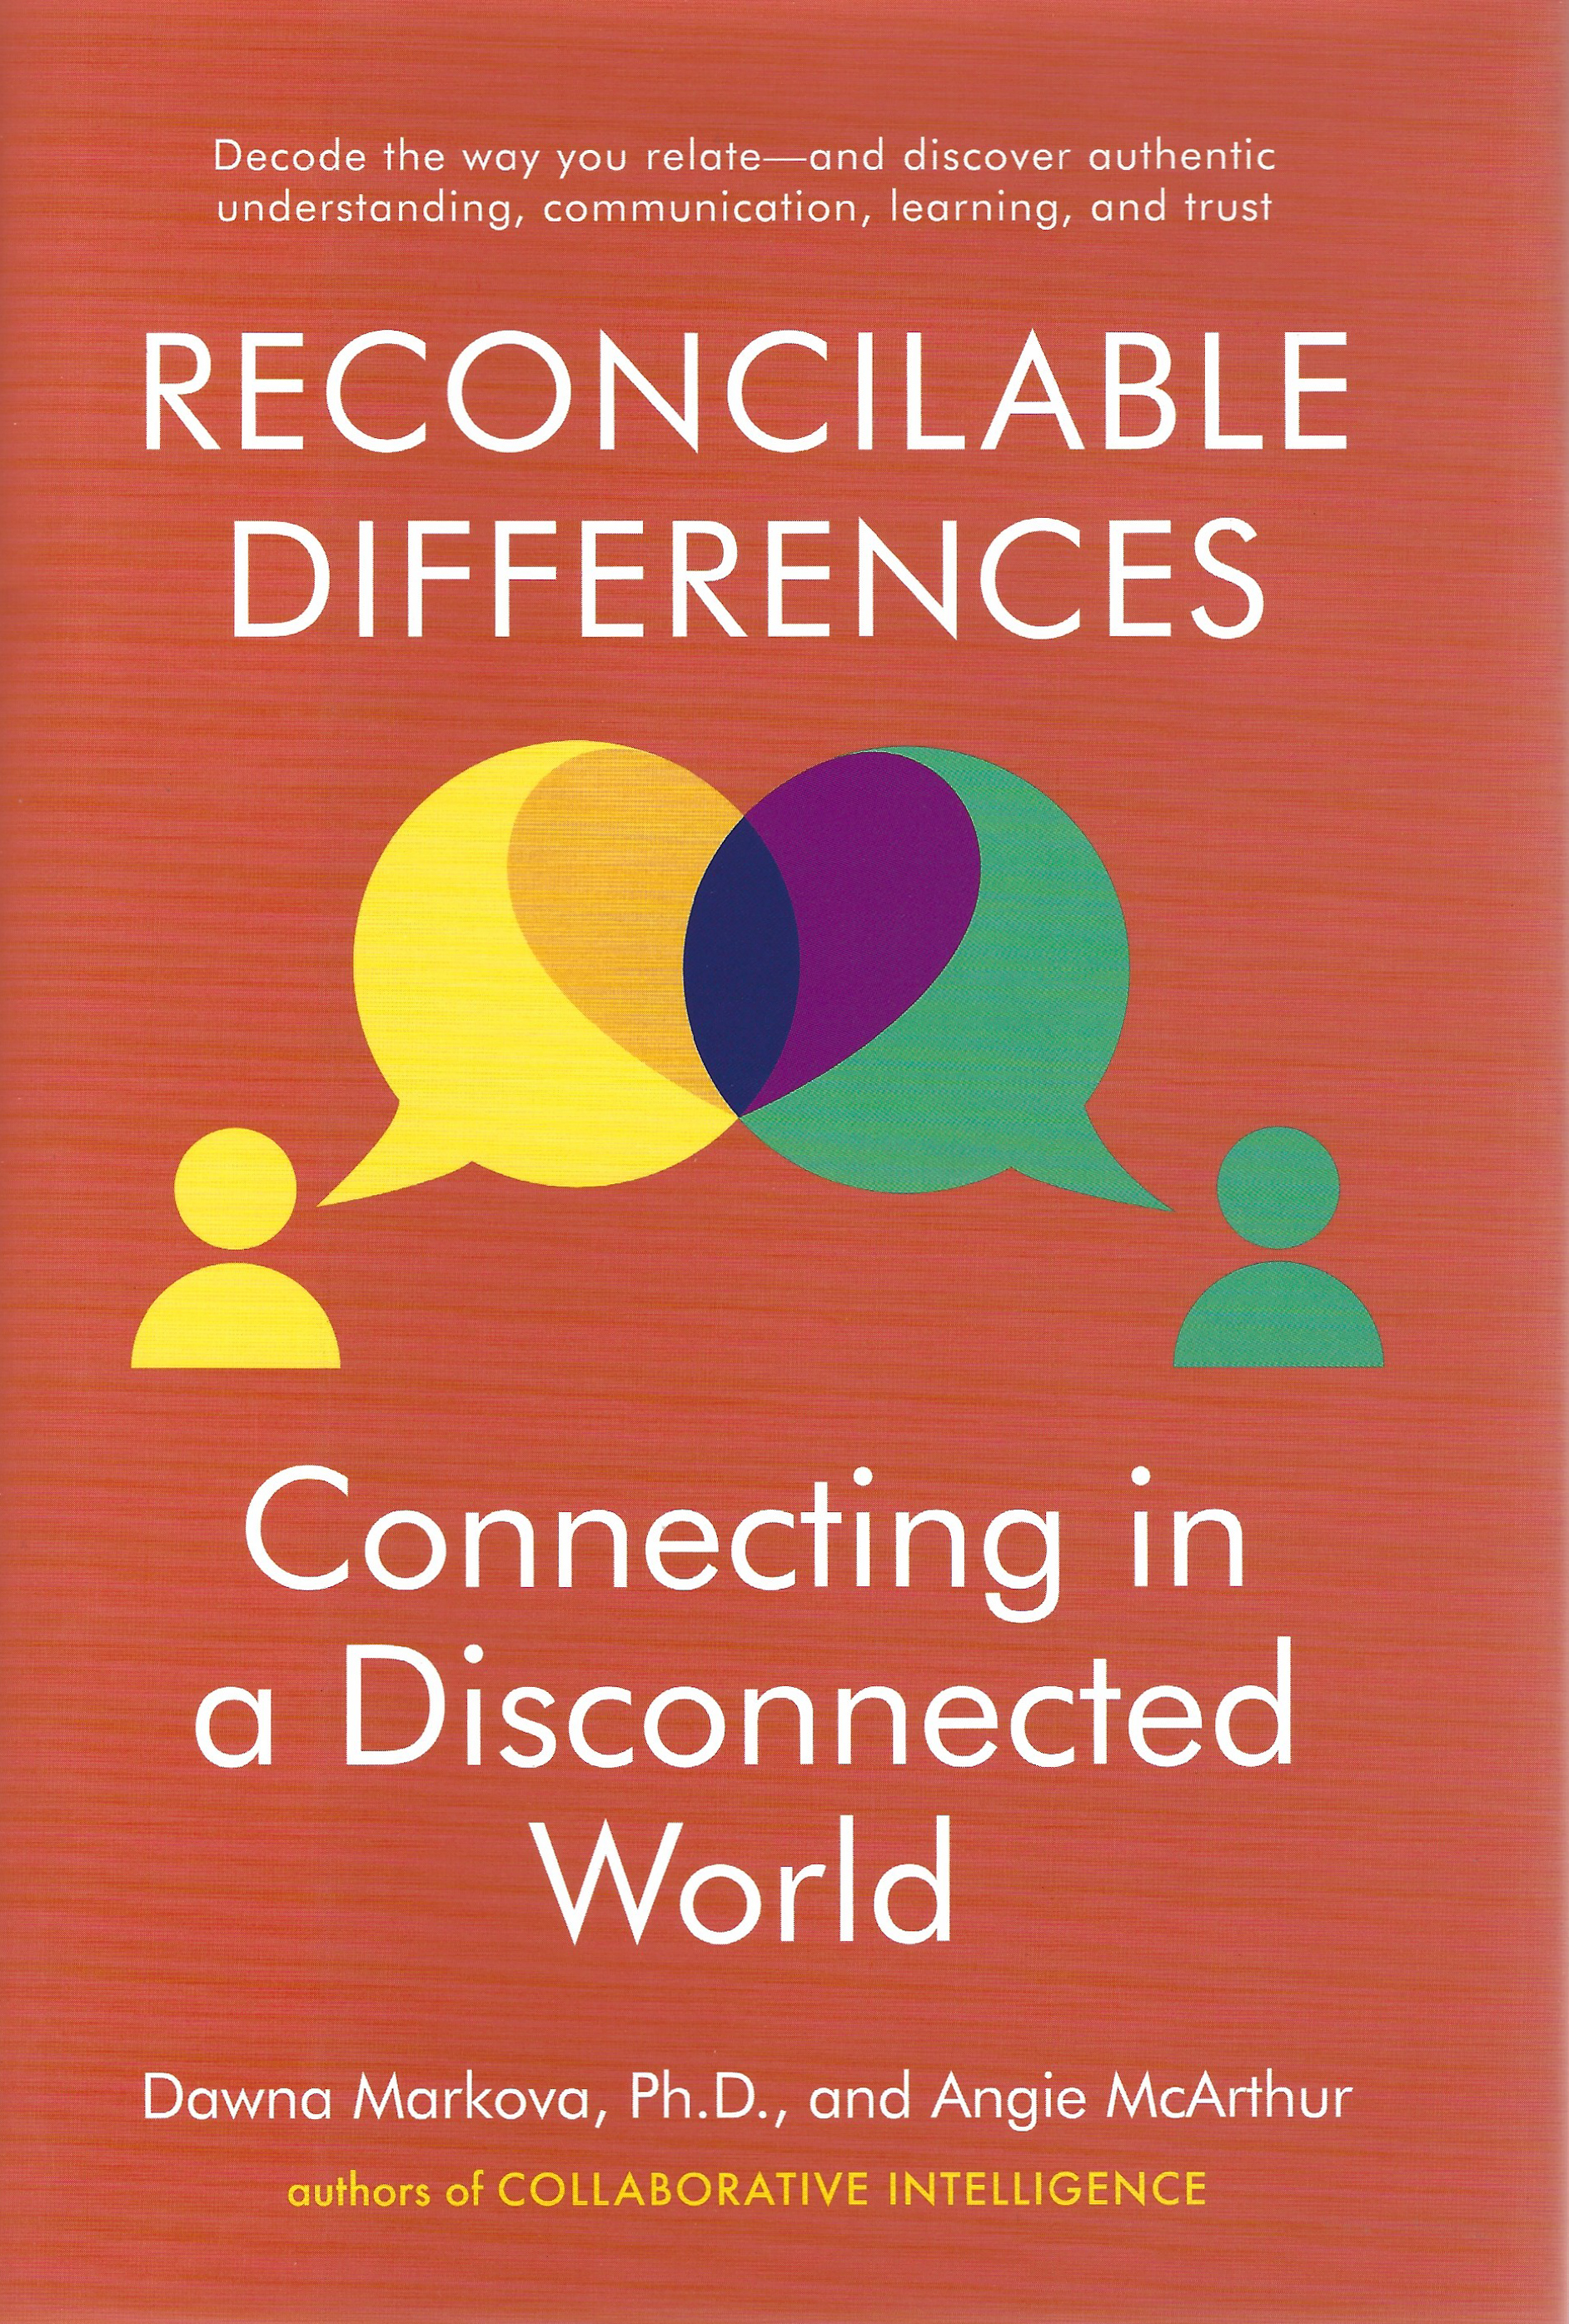 Reconcilable Differences | Dawna Markova, PhD & Angie McArthur